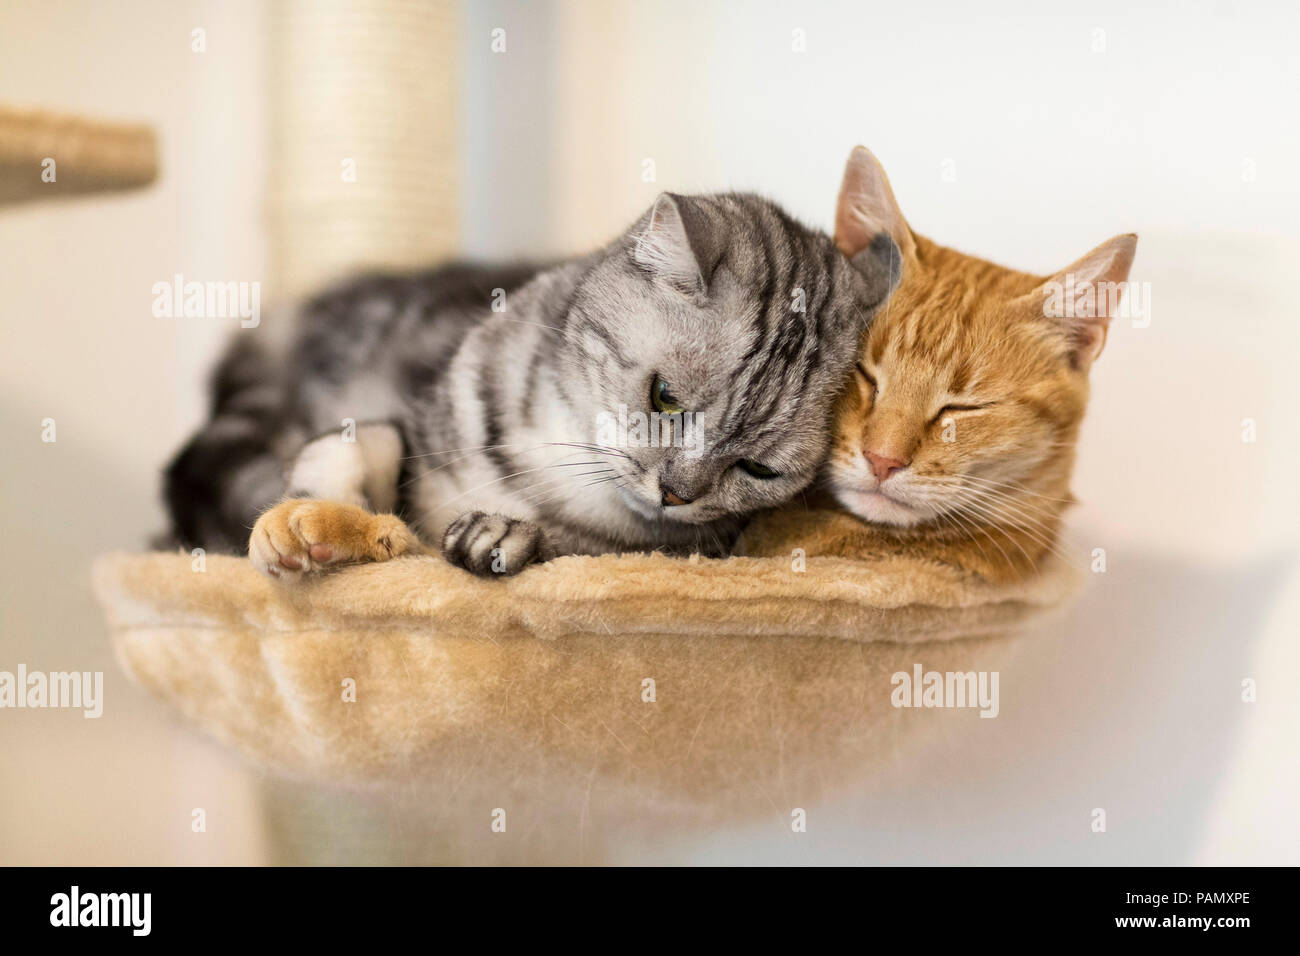 British Shorthair and domestic cat. Two adult cats lying next to each other on a pet bed. Germany . - Stock Image